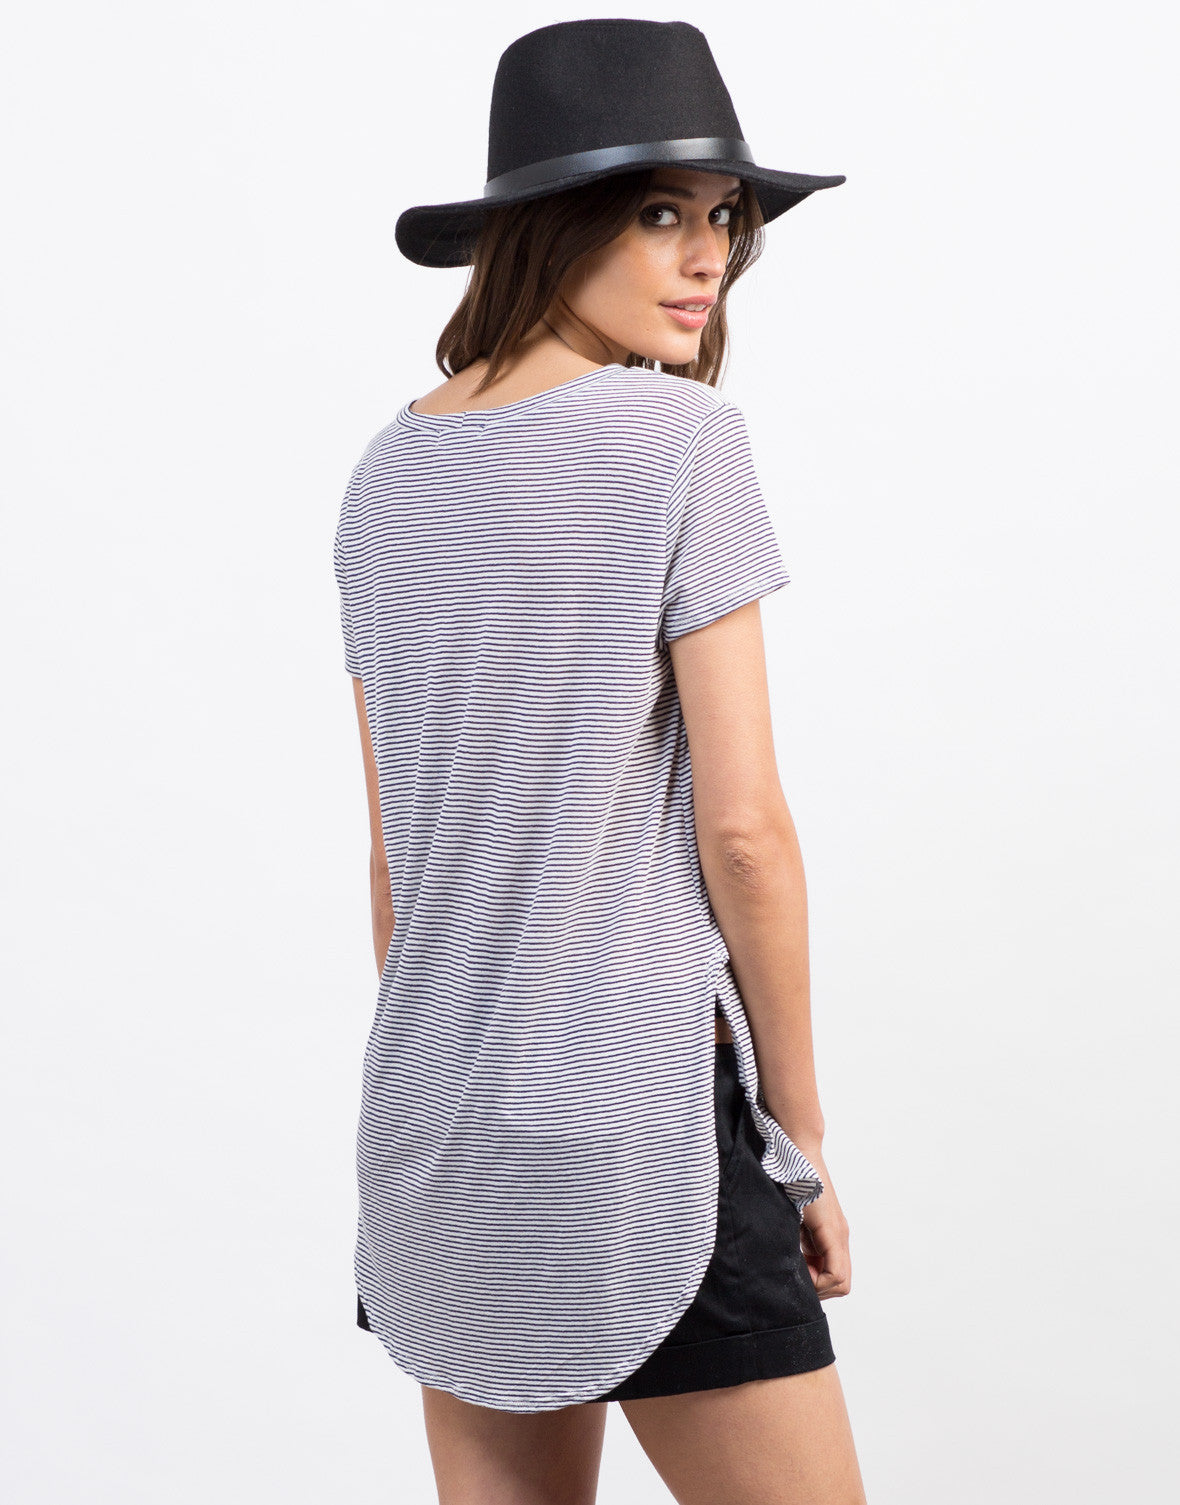 Back View of Striped Hi-Low Tee